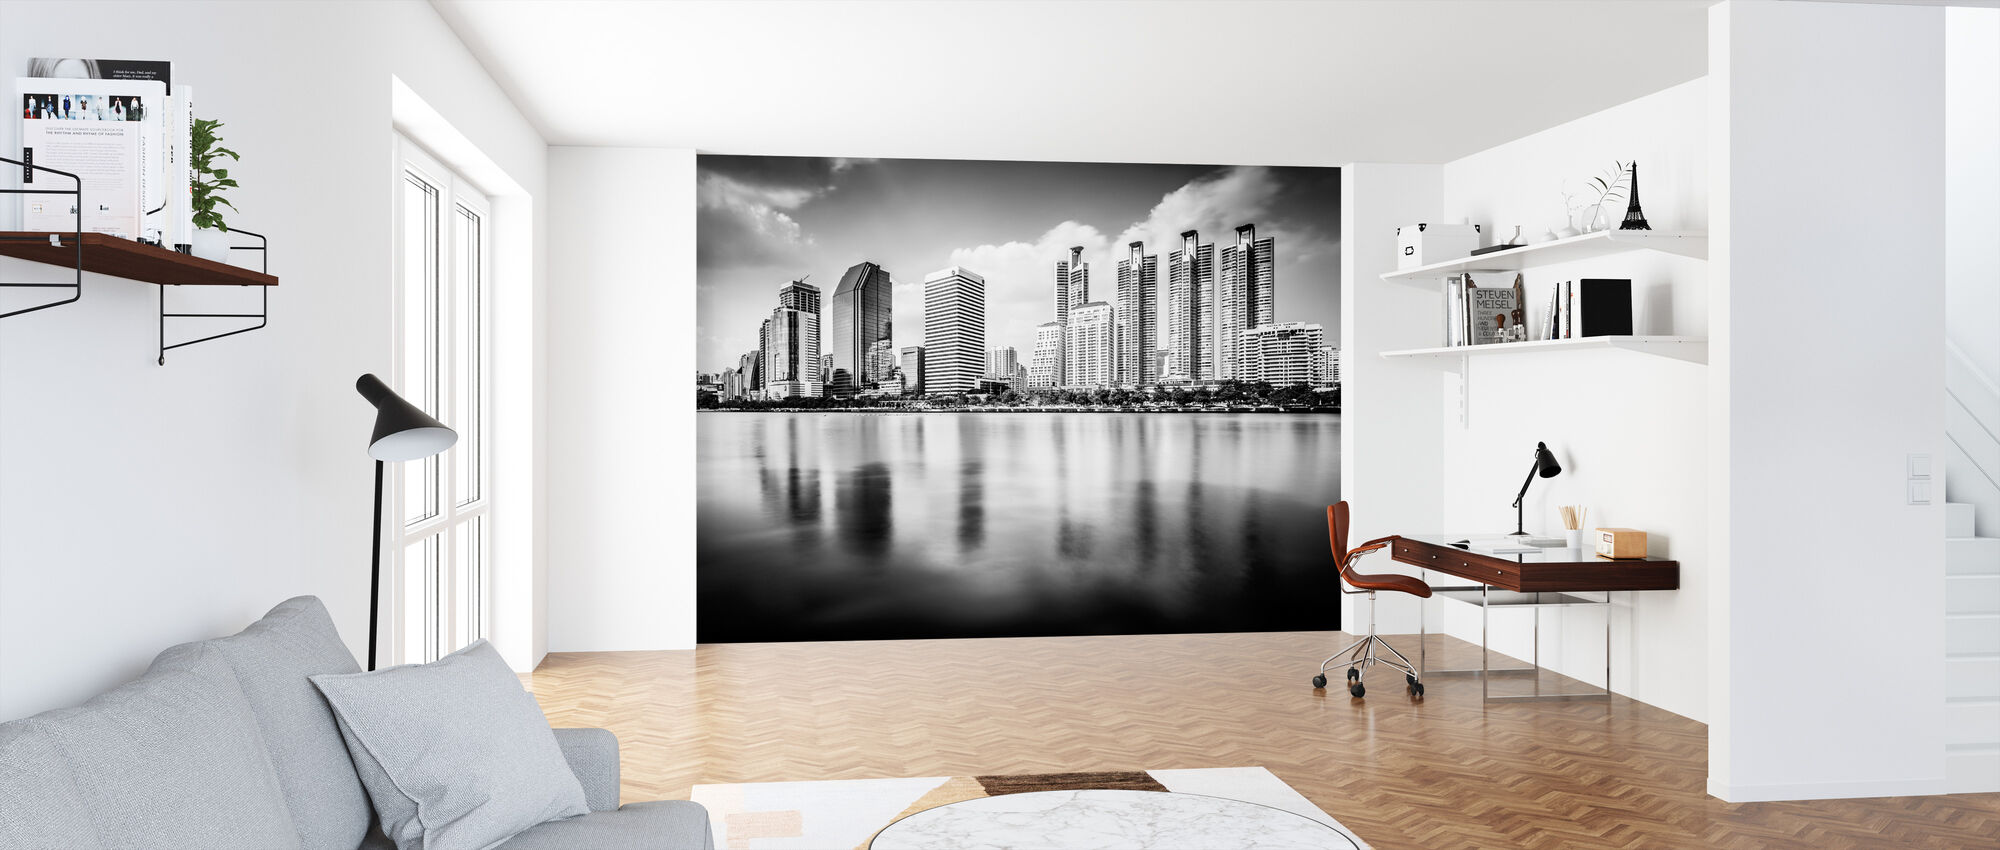 Bangkok Skyline - Wallpaper - Office